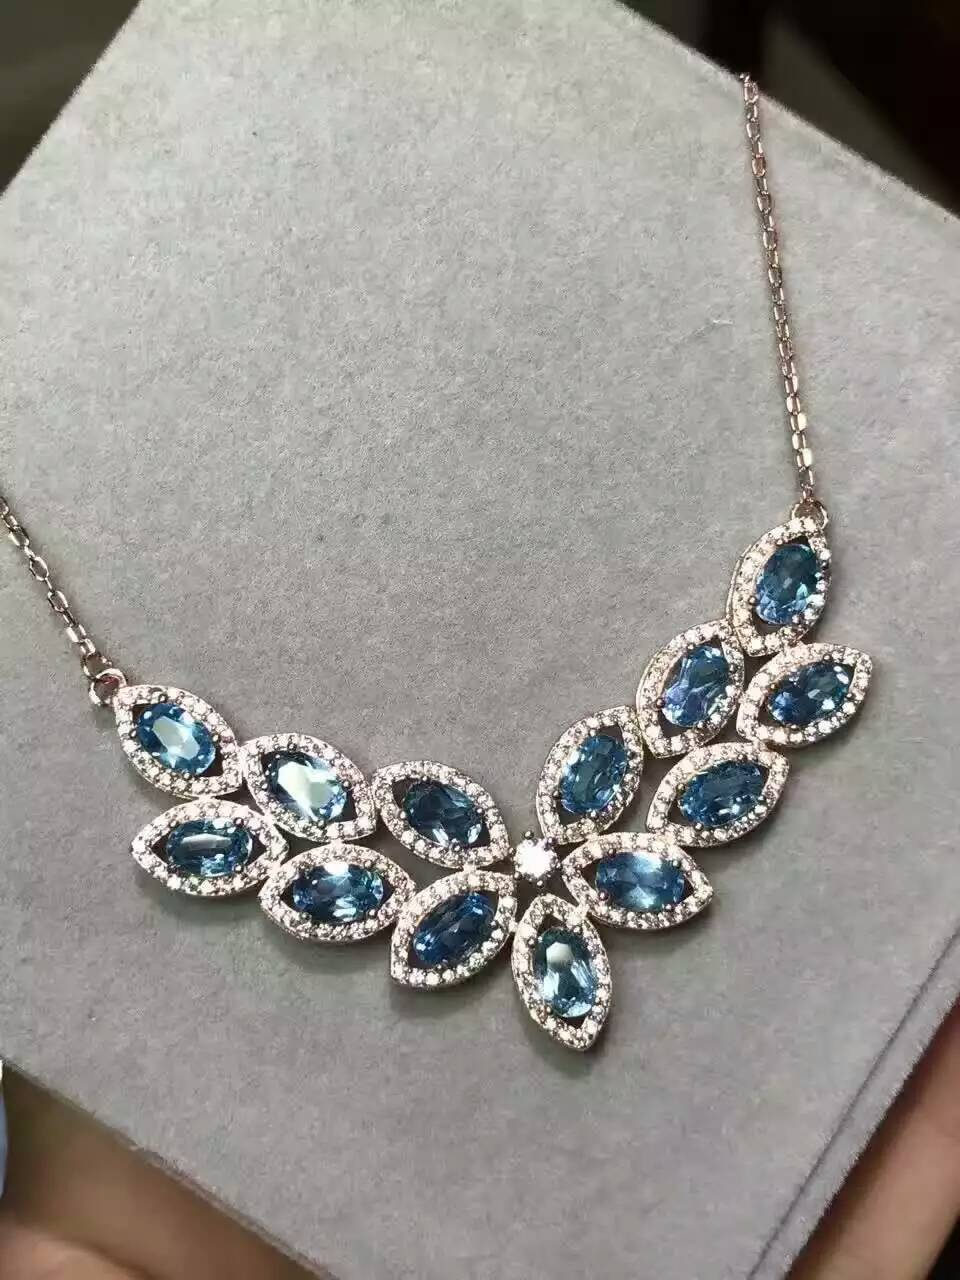 Natural blue topaz gem Necklace natural gemstone Pendant Necklace S925 silver trendy Luxury row Water droplets women Jewelry 720p ip camera wi fi ip cameras wifi video surveillance camera night vision cctv camera baby monitor ir cut indoor home security